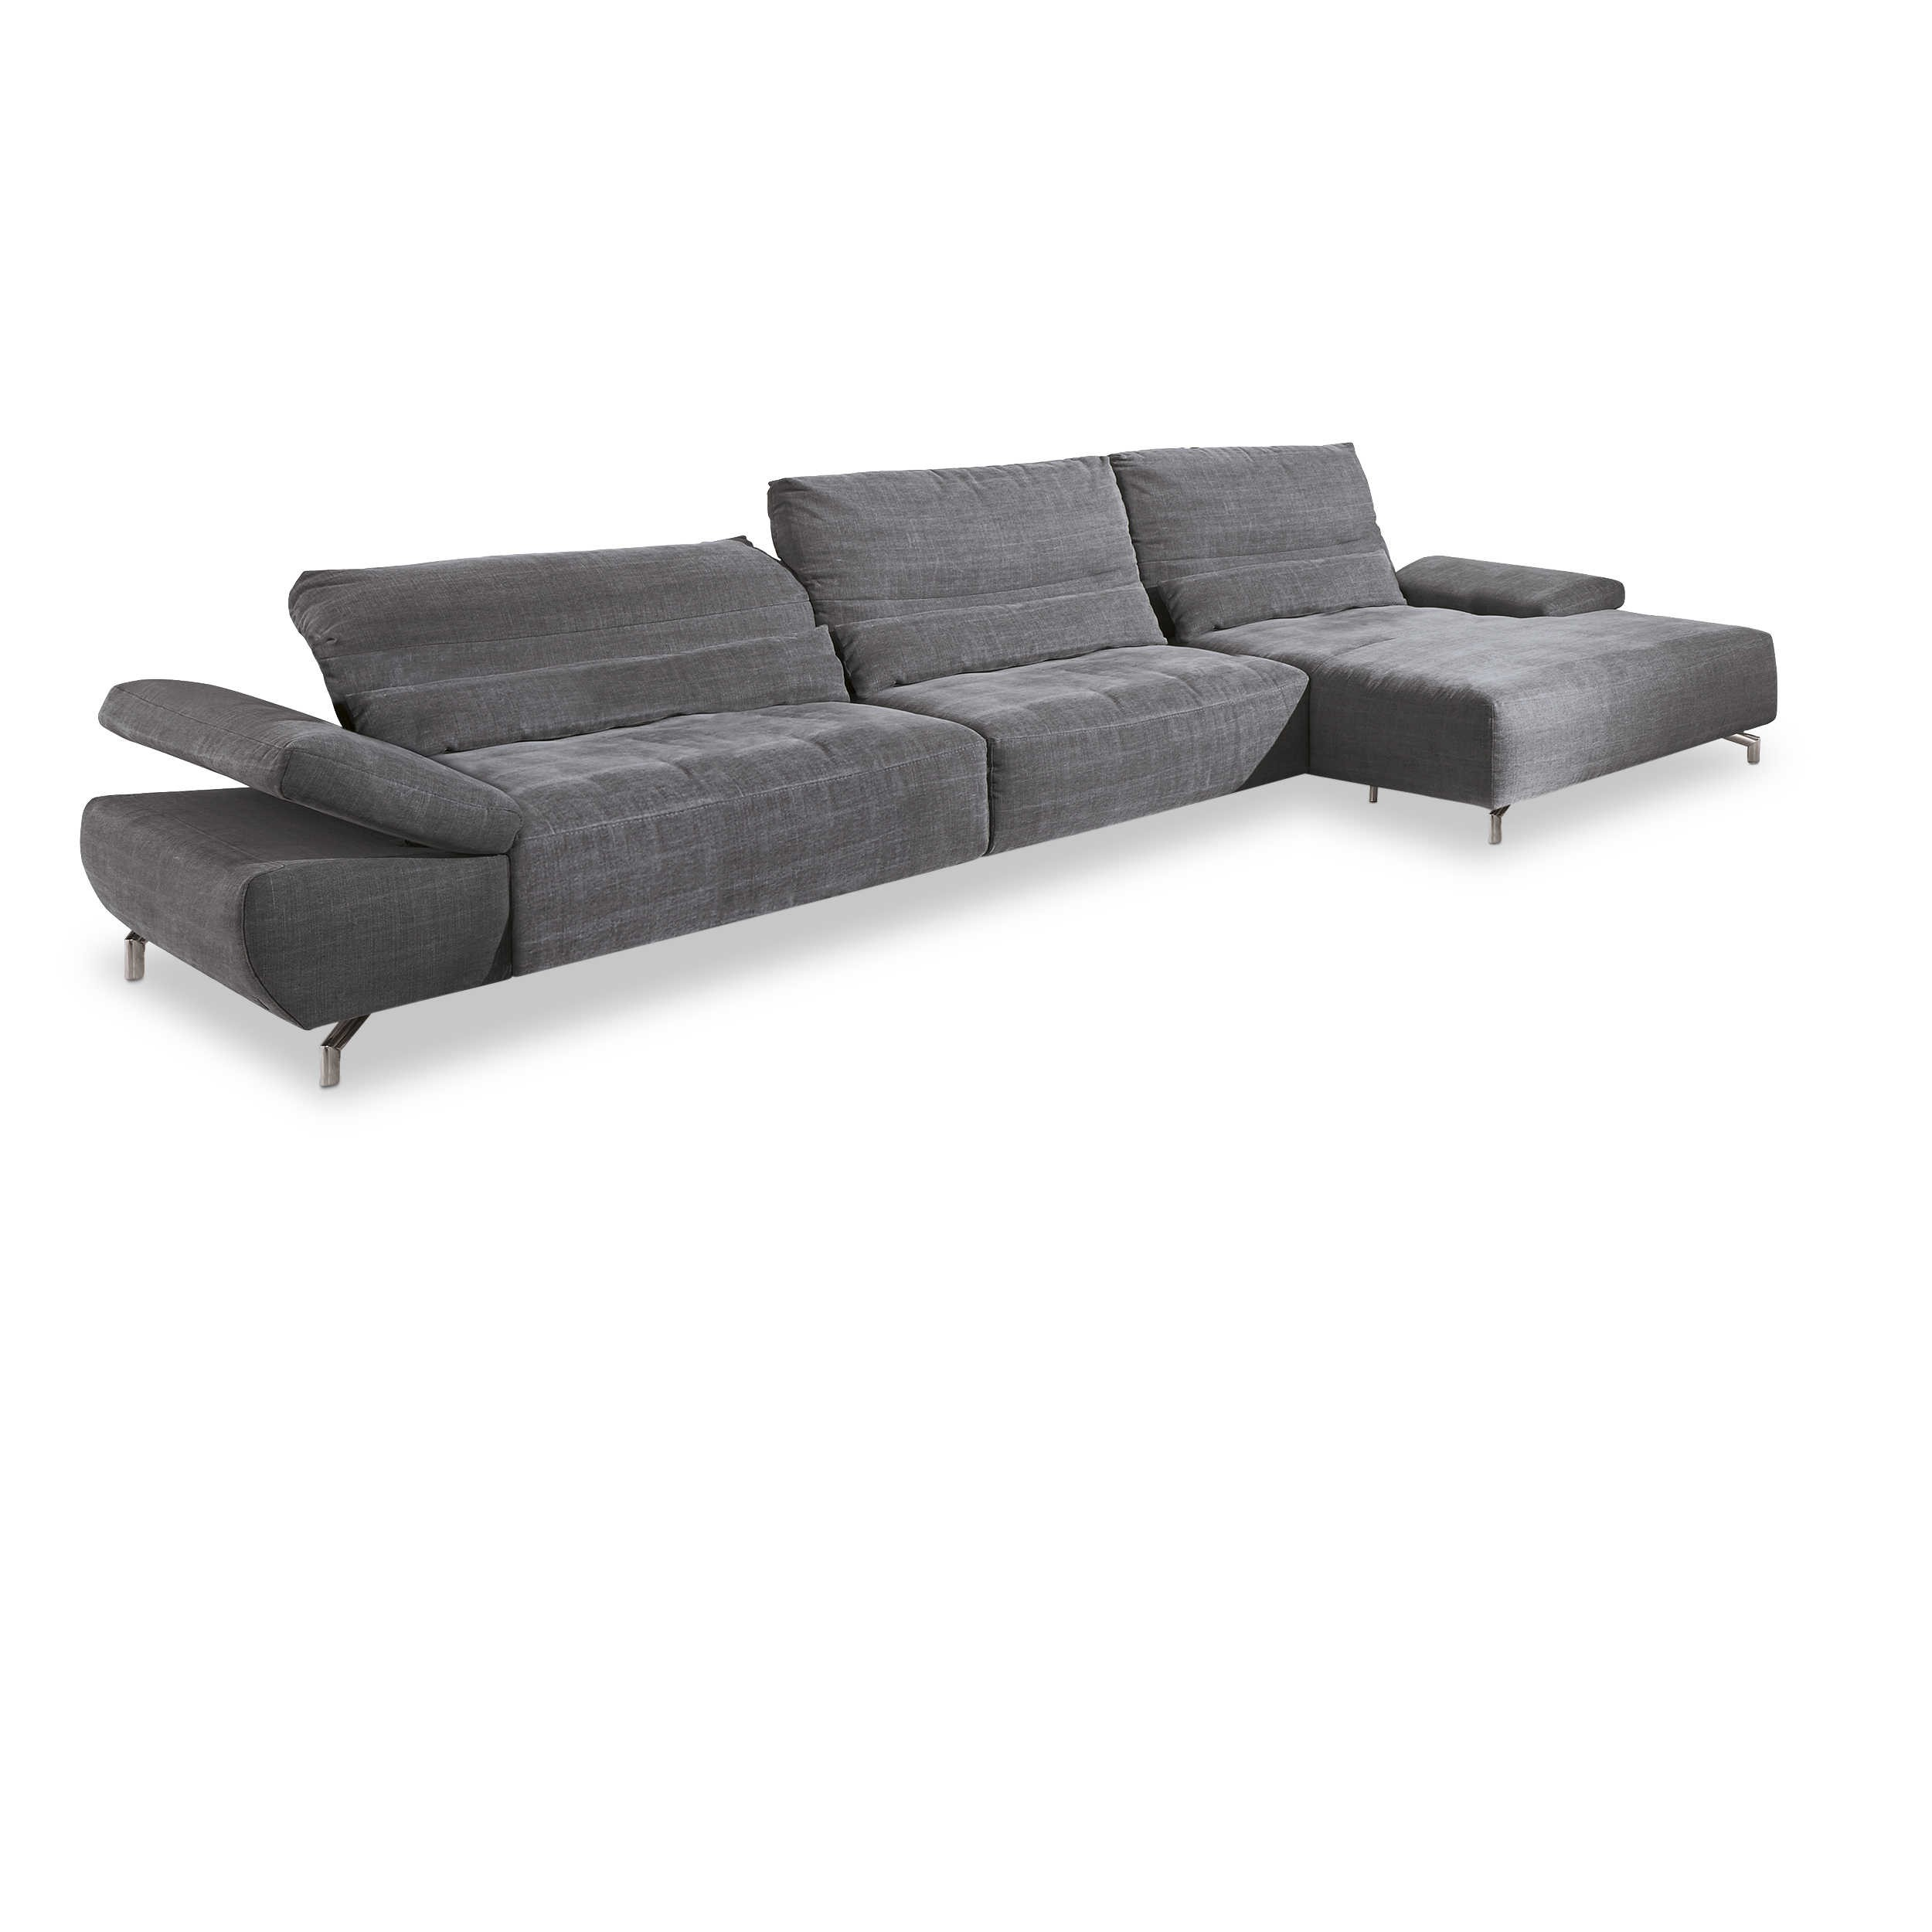 musterring ecksofa mr 6060 anthrazit stoff online kaufen bei woonio. Black Bedroom Furniture Sets. Home Design Ideas